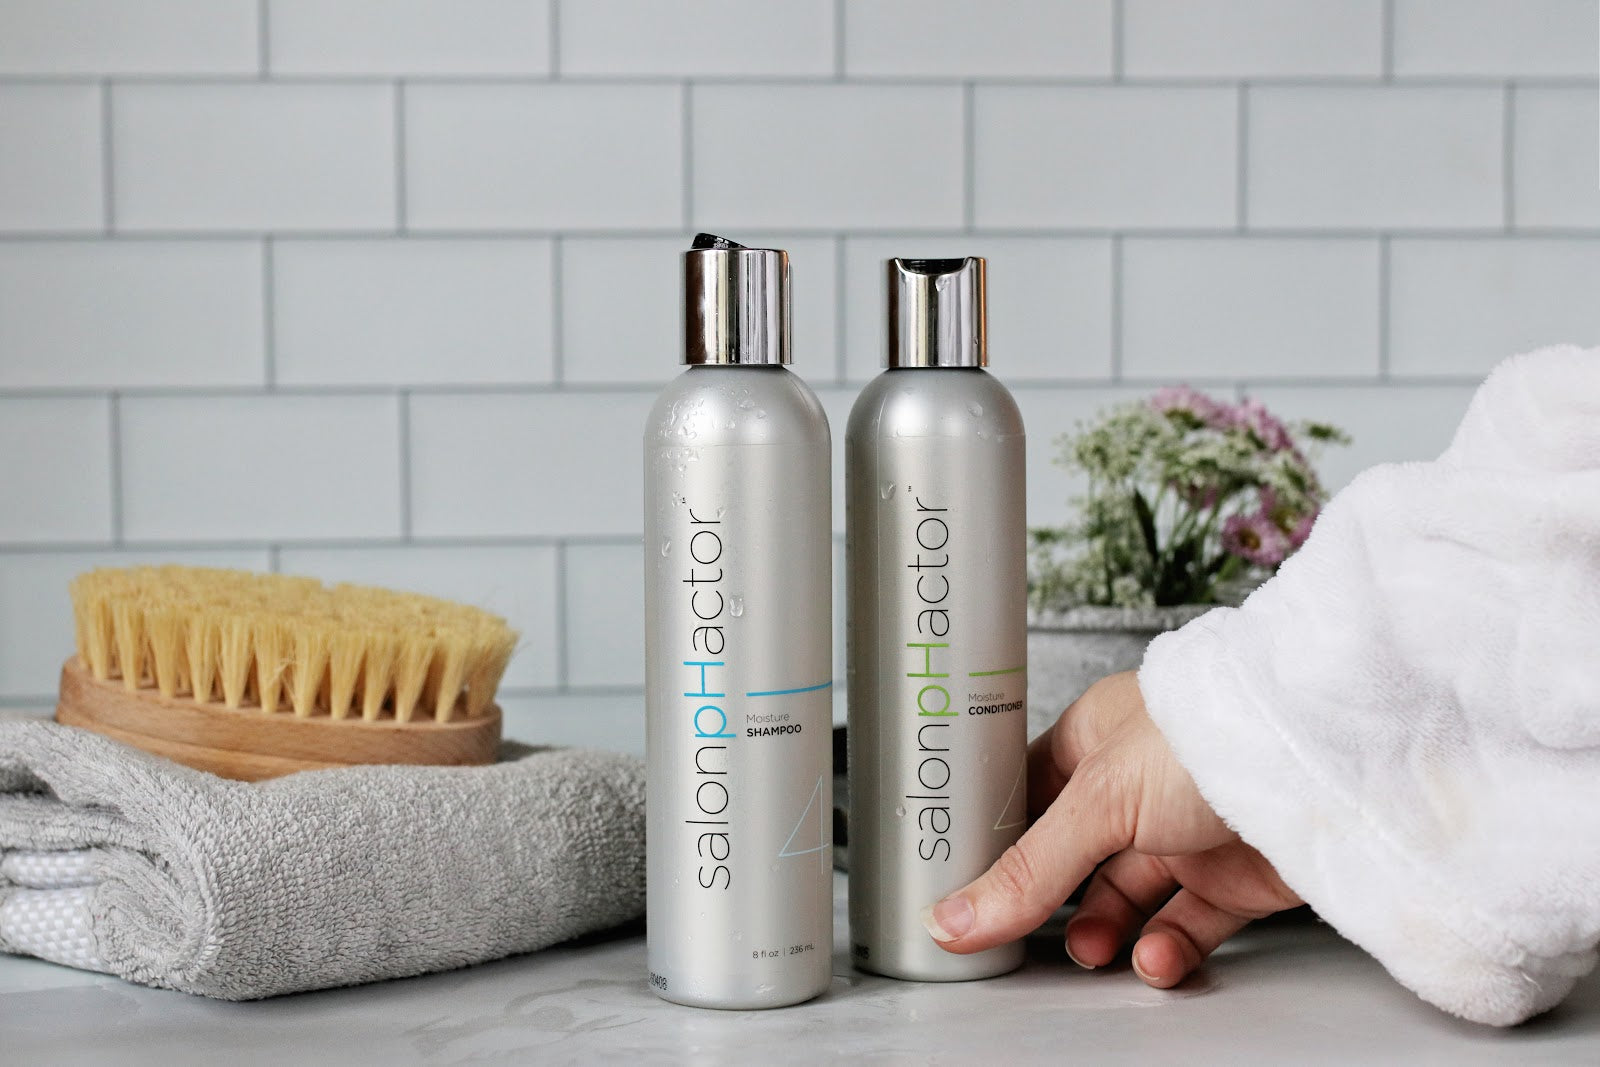 salonphactor hair care products